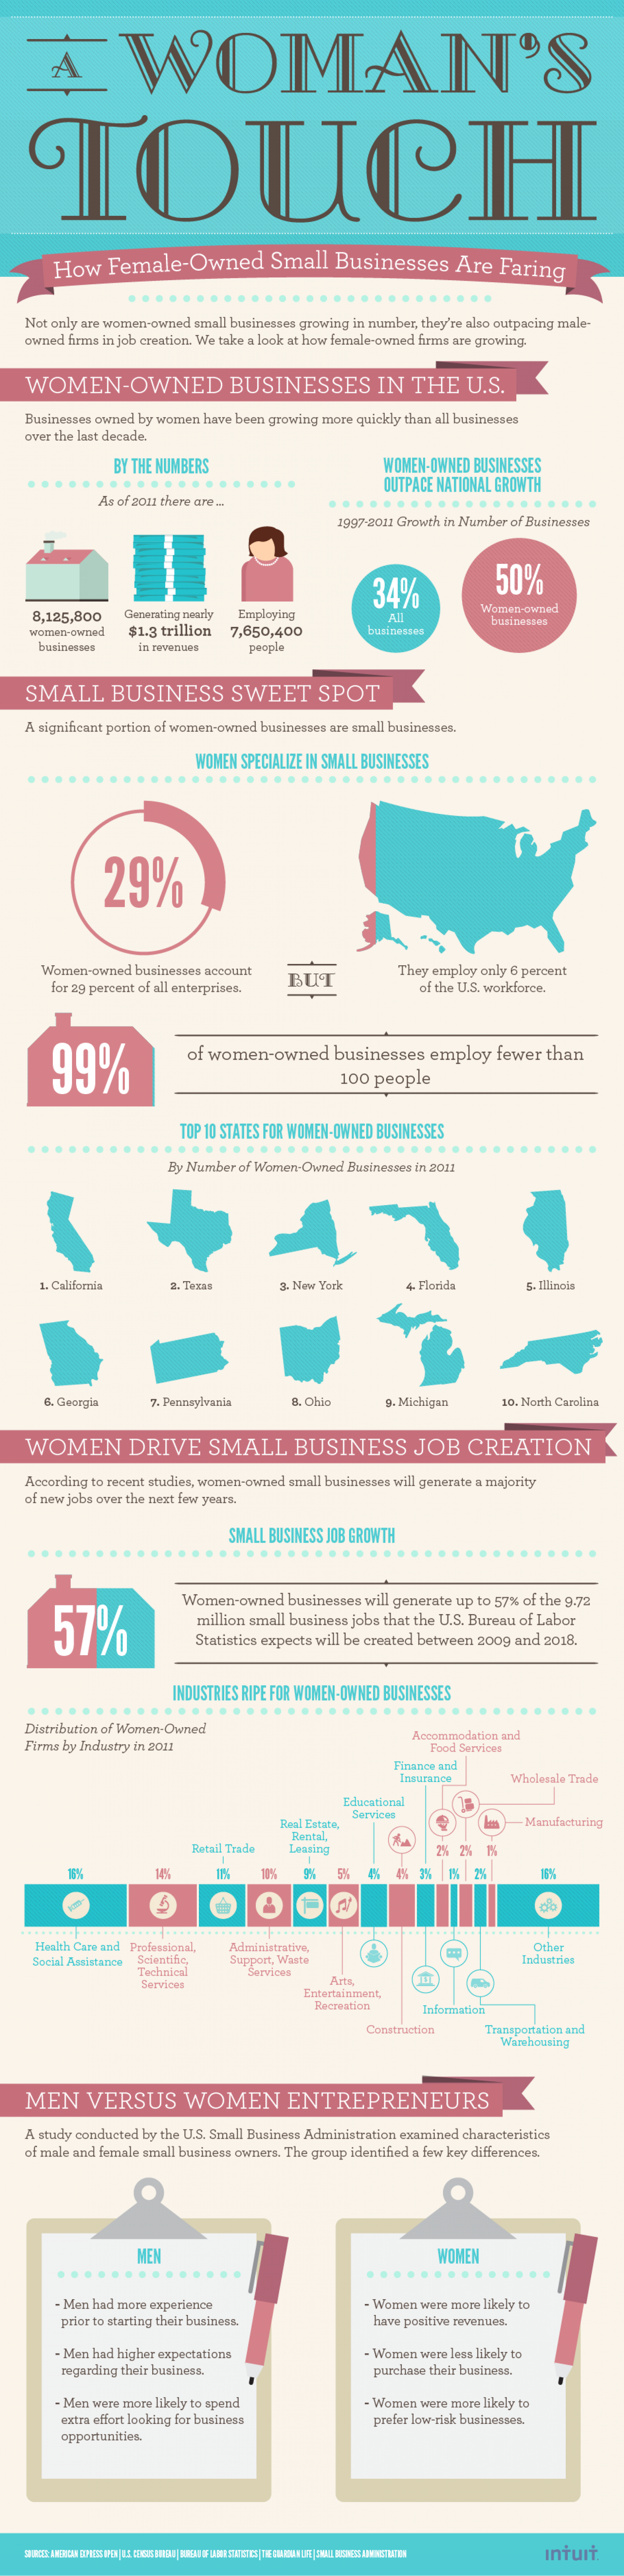 Women Flex Big Muscle In Small Business  Infographic